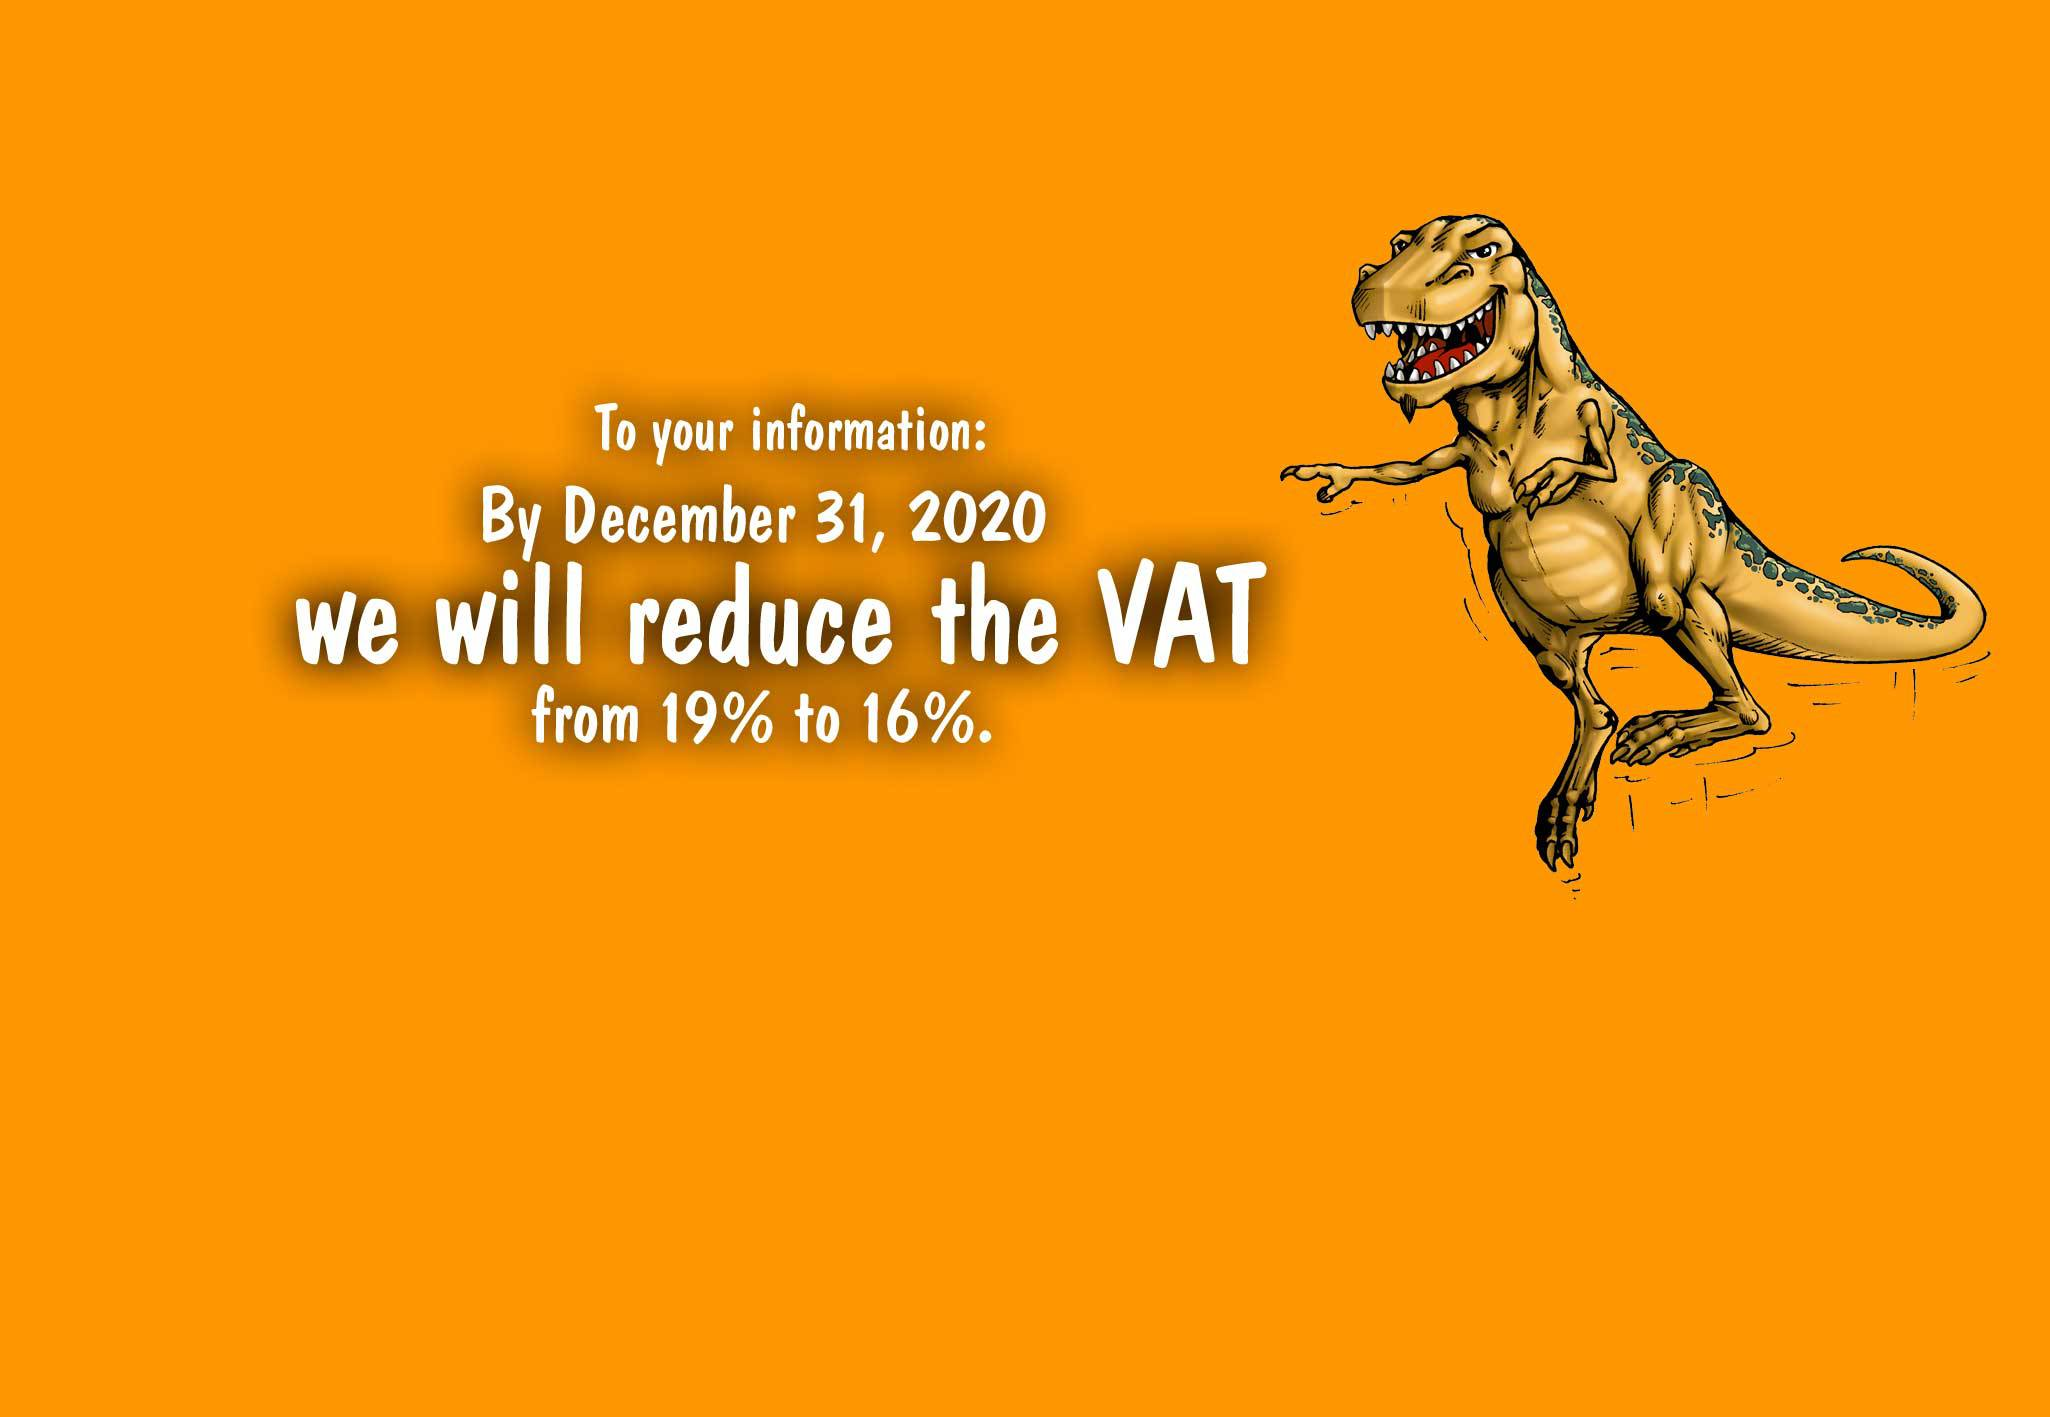 VAT reduction from 19% to 16%.